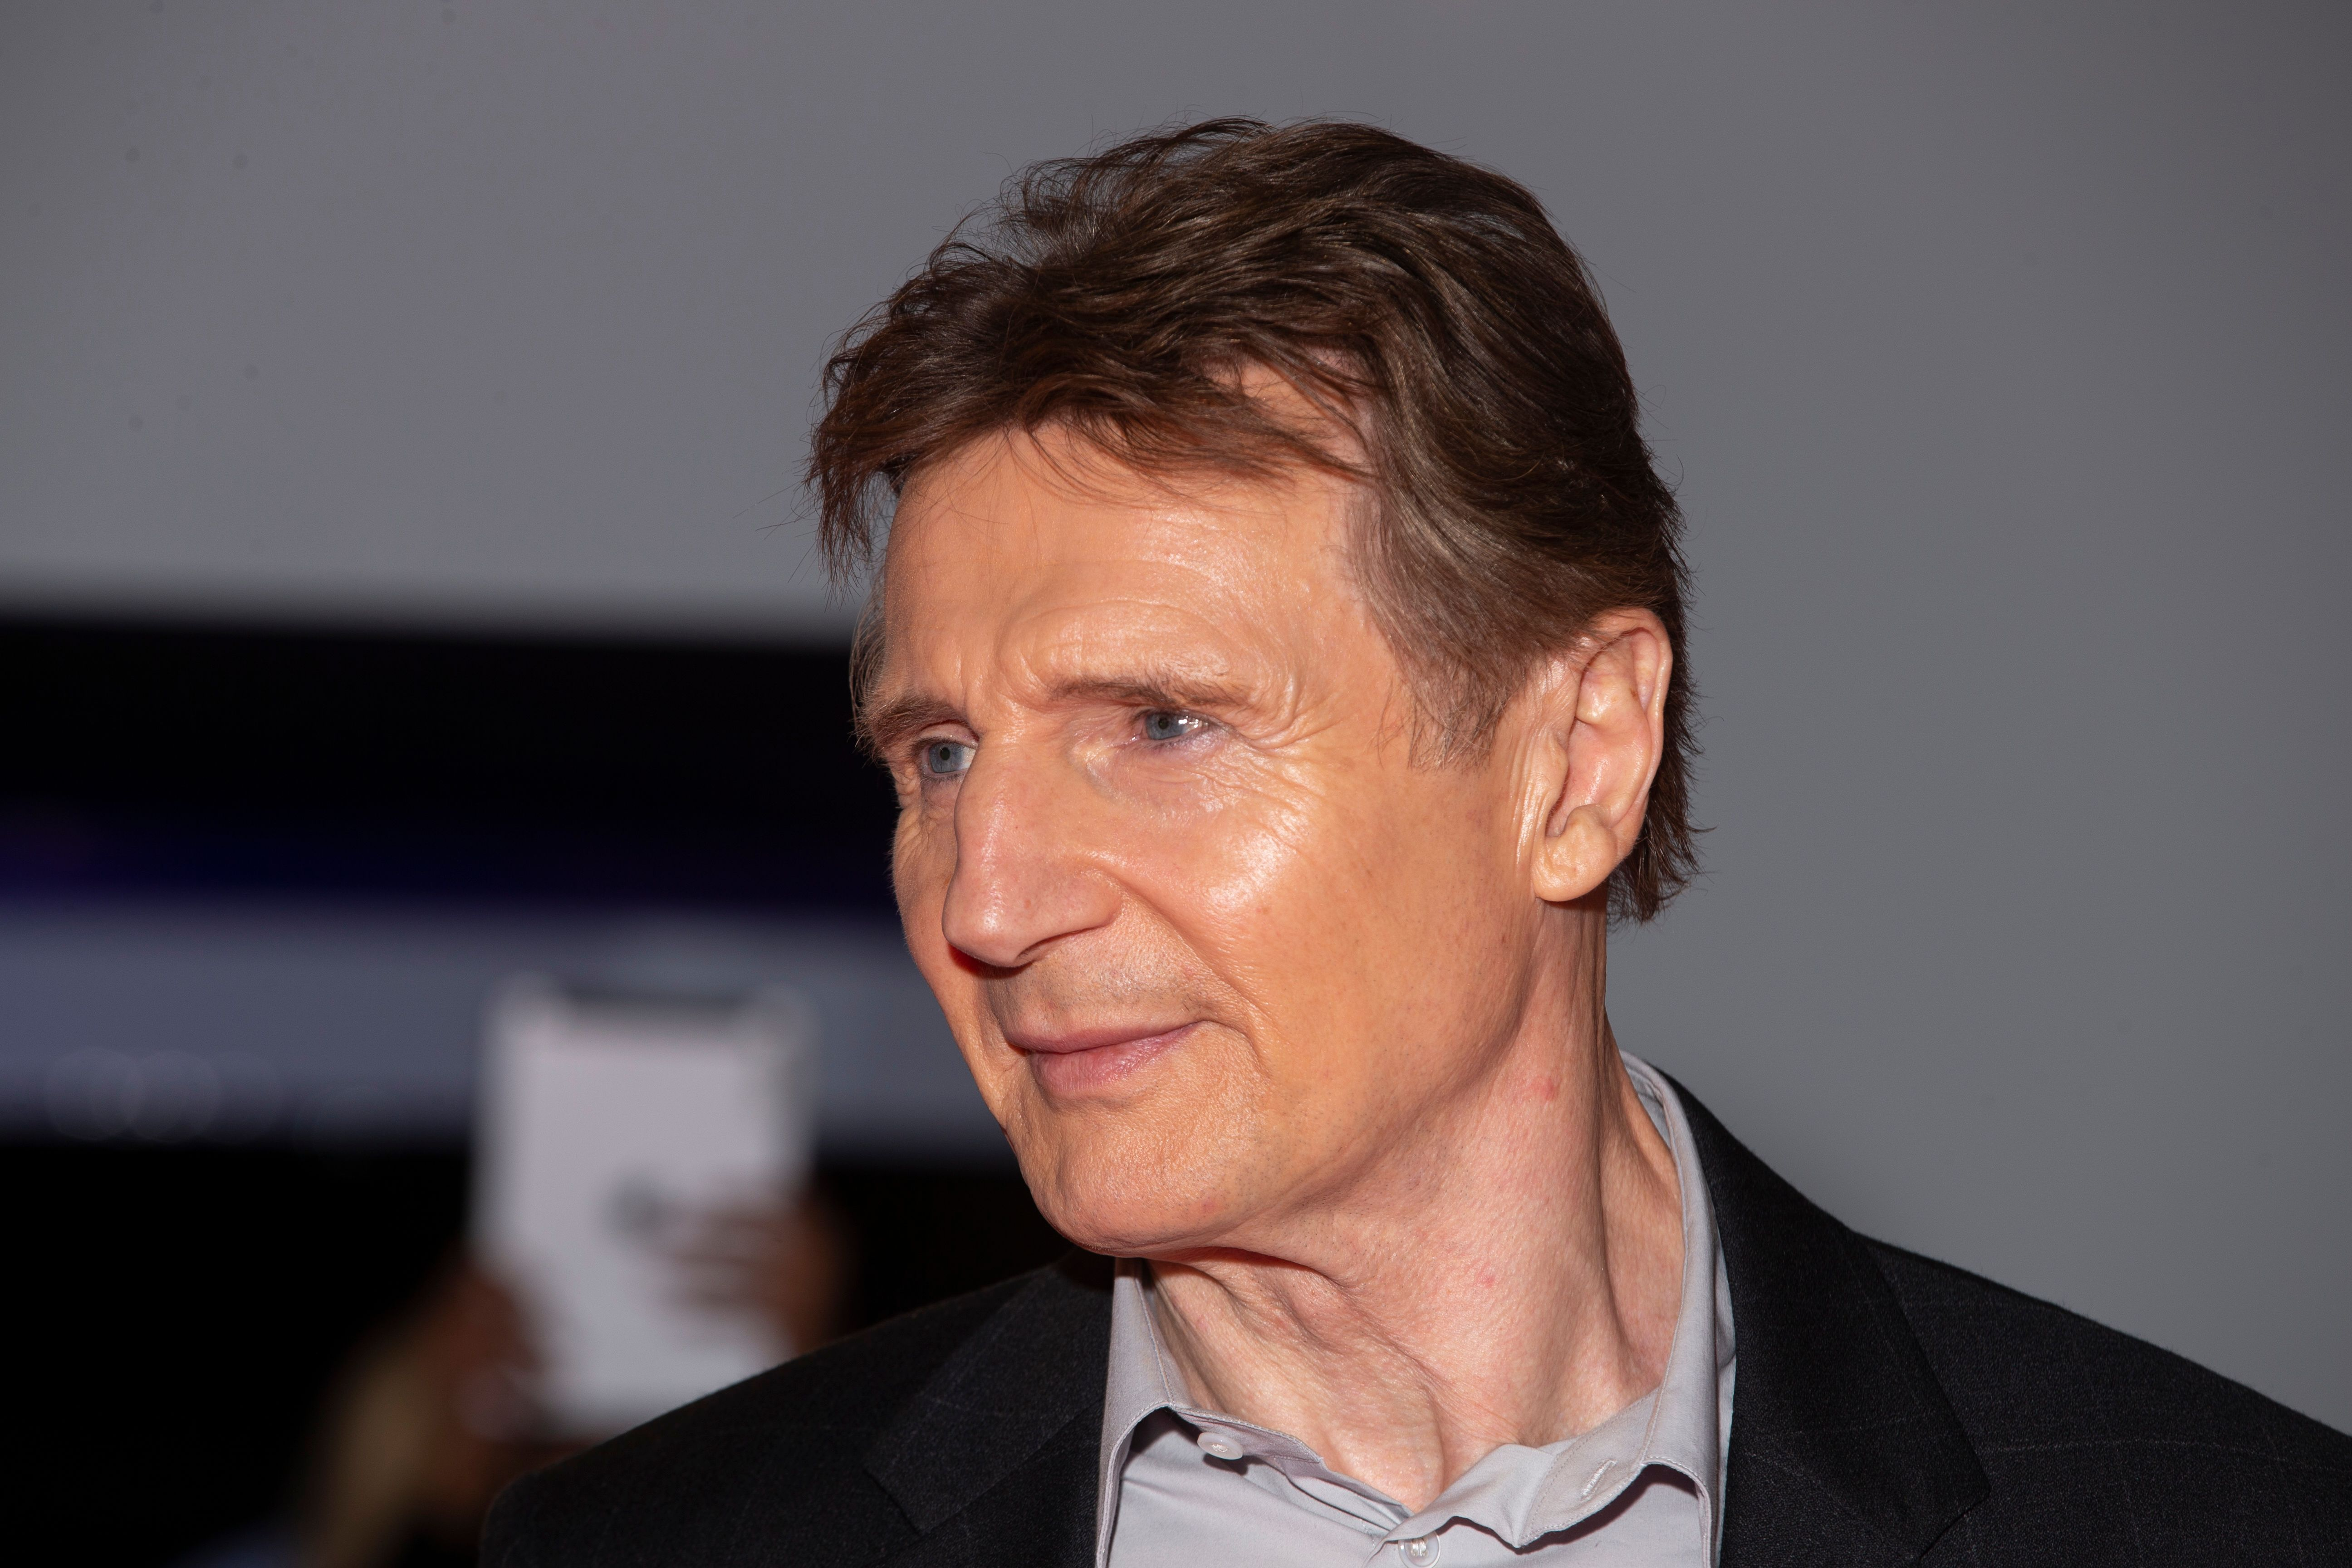 Irish actor Liam Neeson arrives at the premiere of 'Widows' at the Toronto International Film Festival in Toronto, Ontario, September 8, 2018. Getty Images